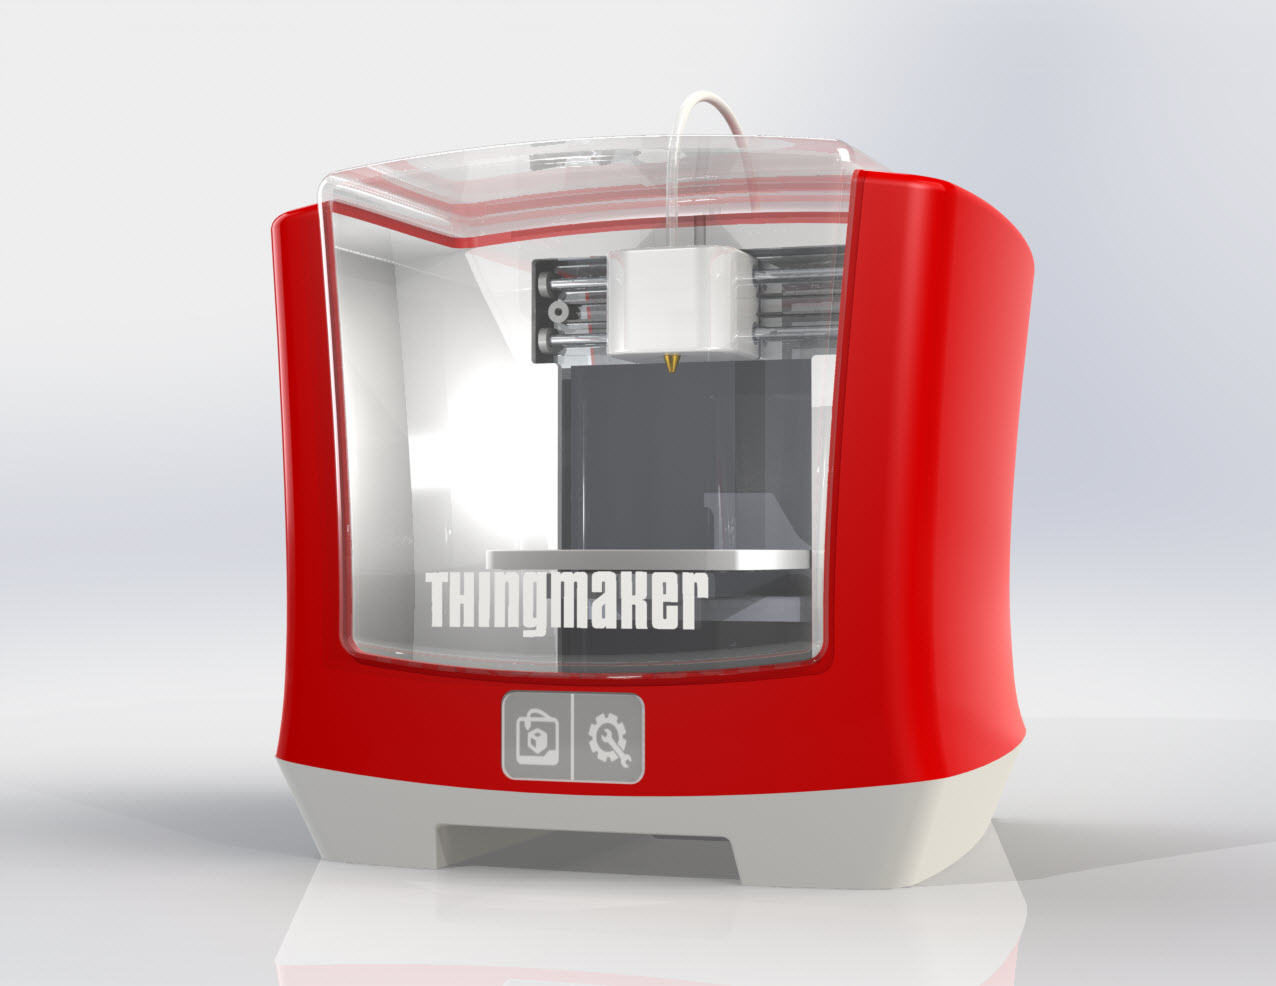 Why Mattel's Thingmaker 3-D Printer Could Be a Game Changer for Toy Industry